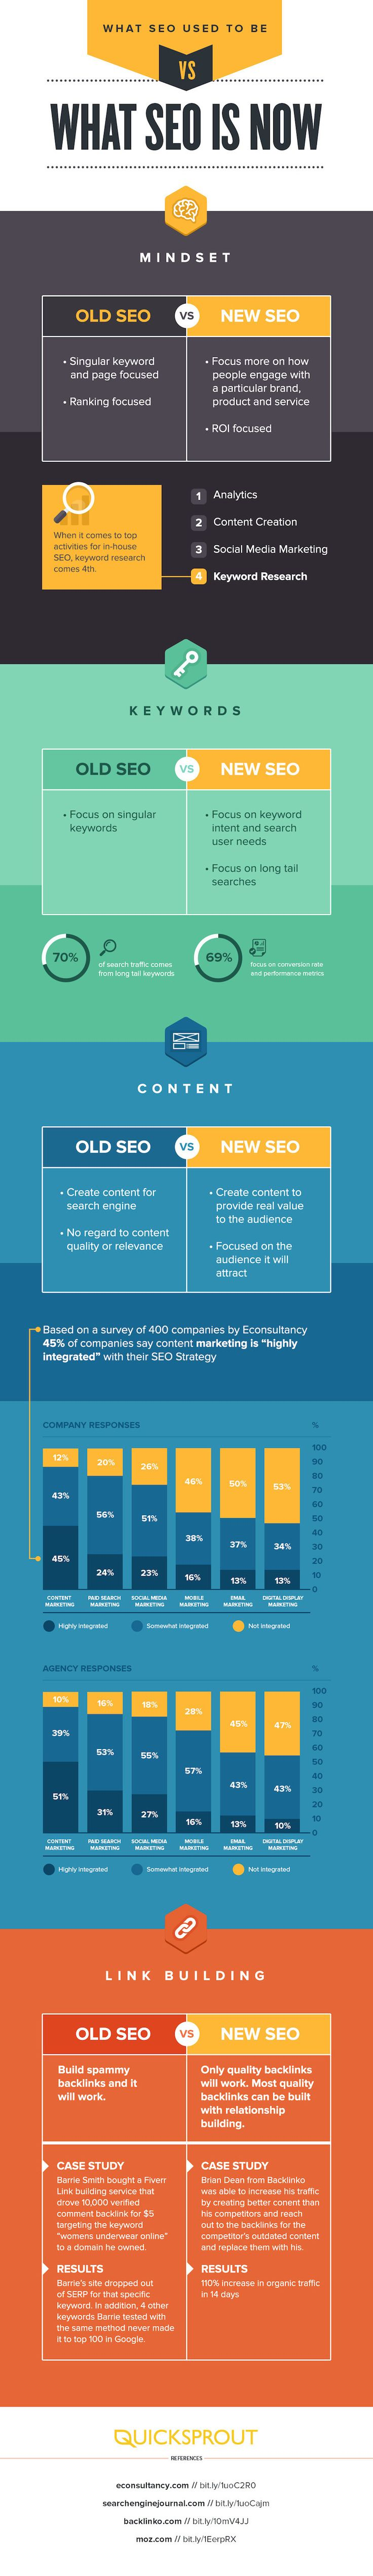 What SEO Used to Be Versus What #SEO Is Now - #infographic #infografía